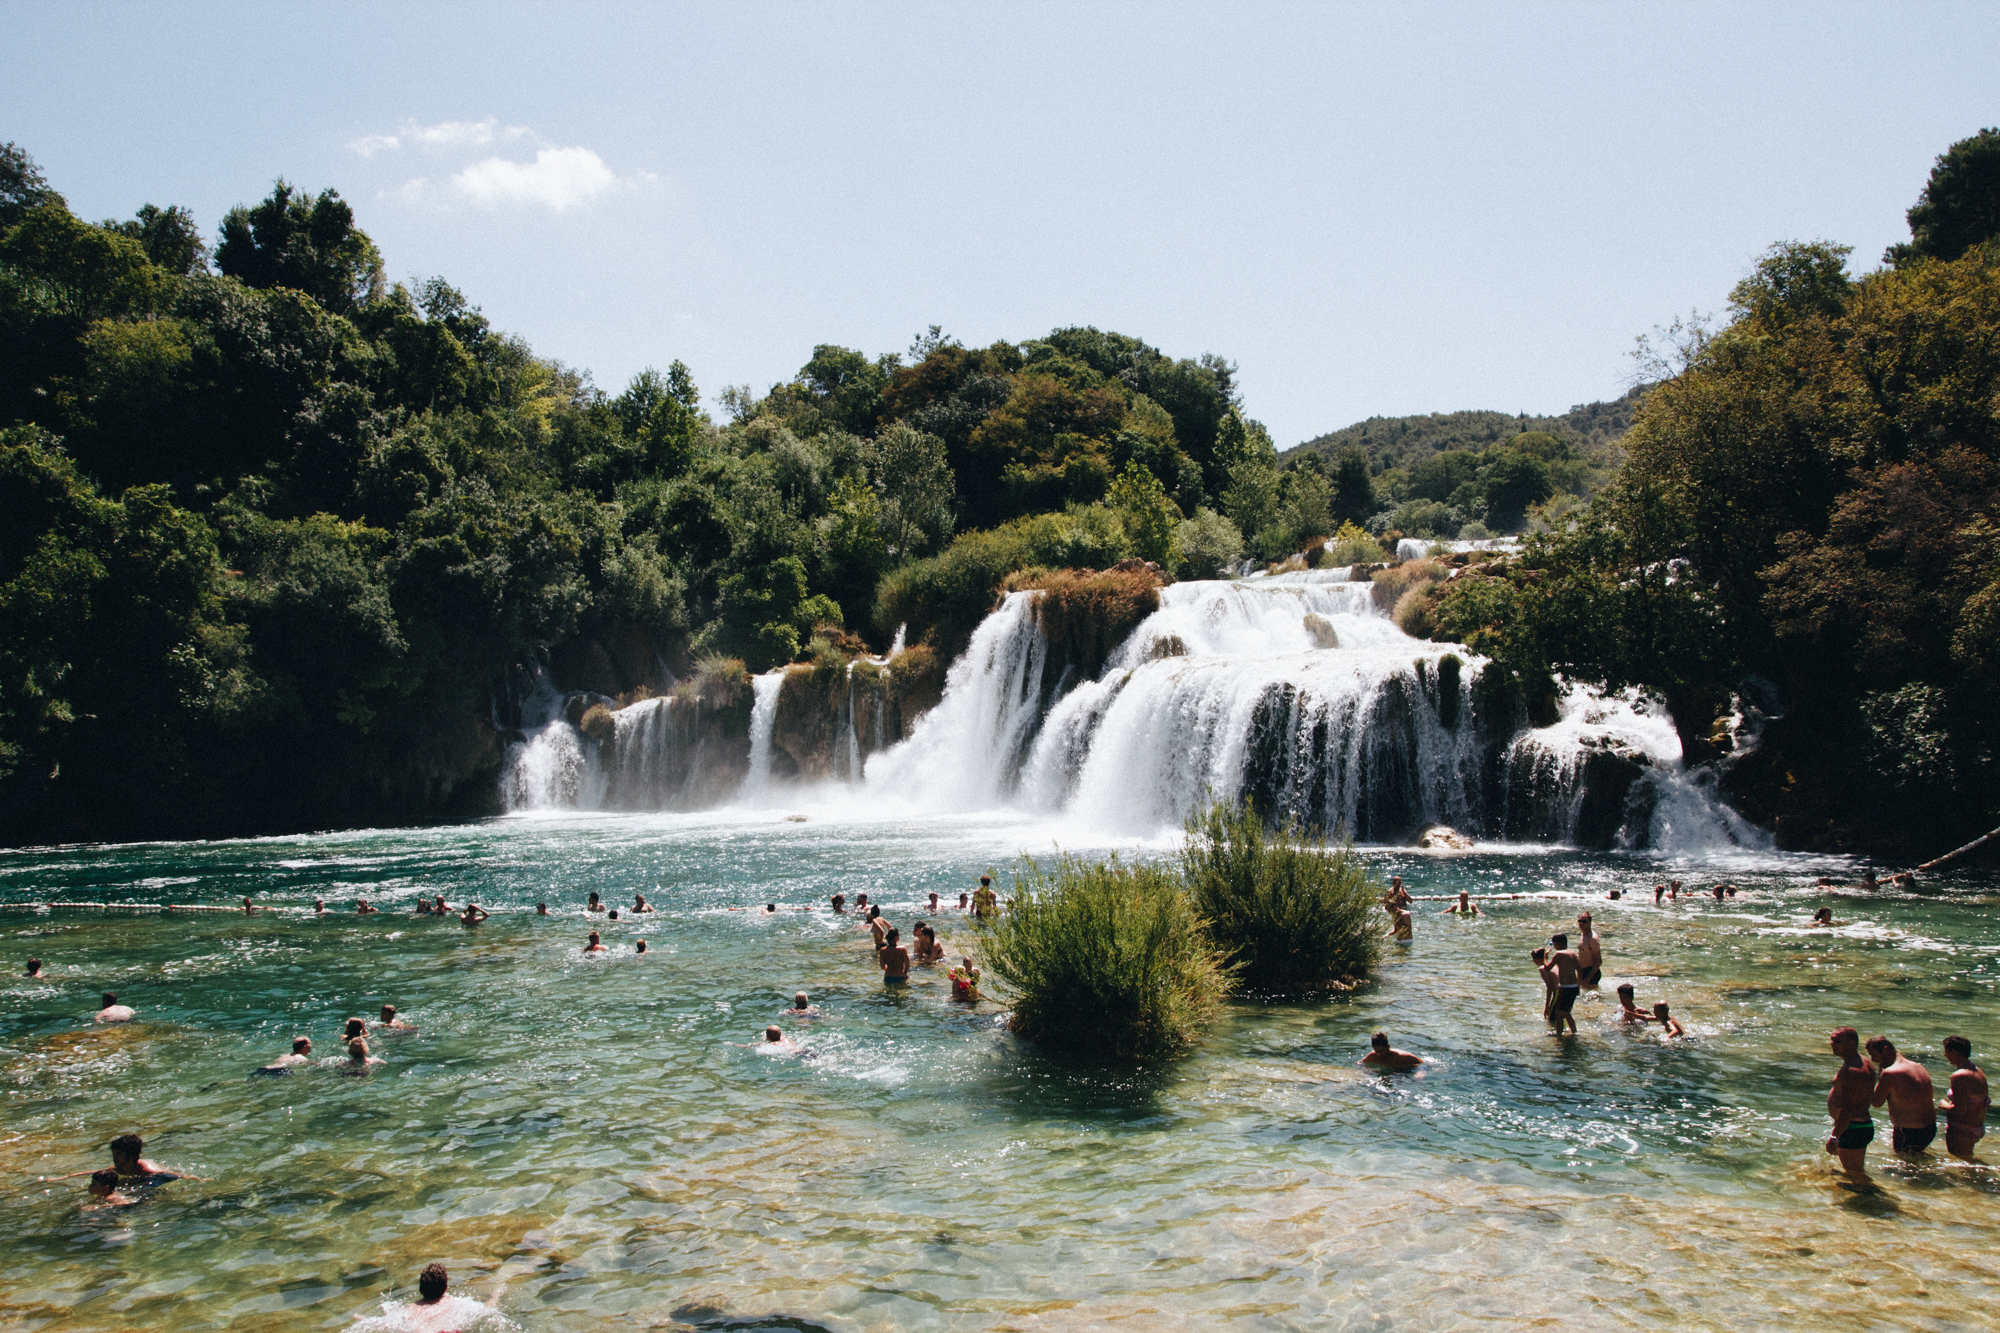 Krka Falls National Park